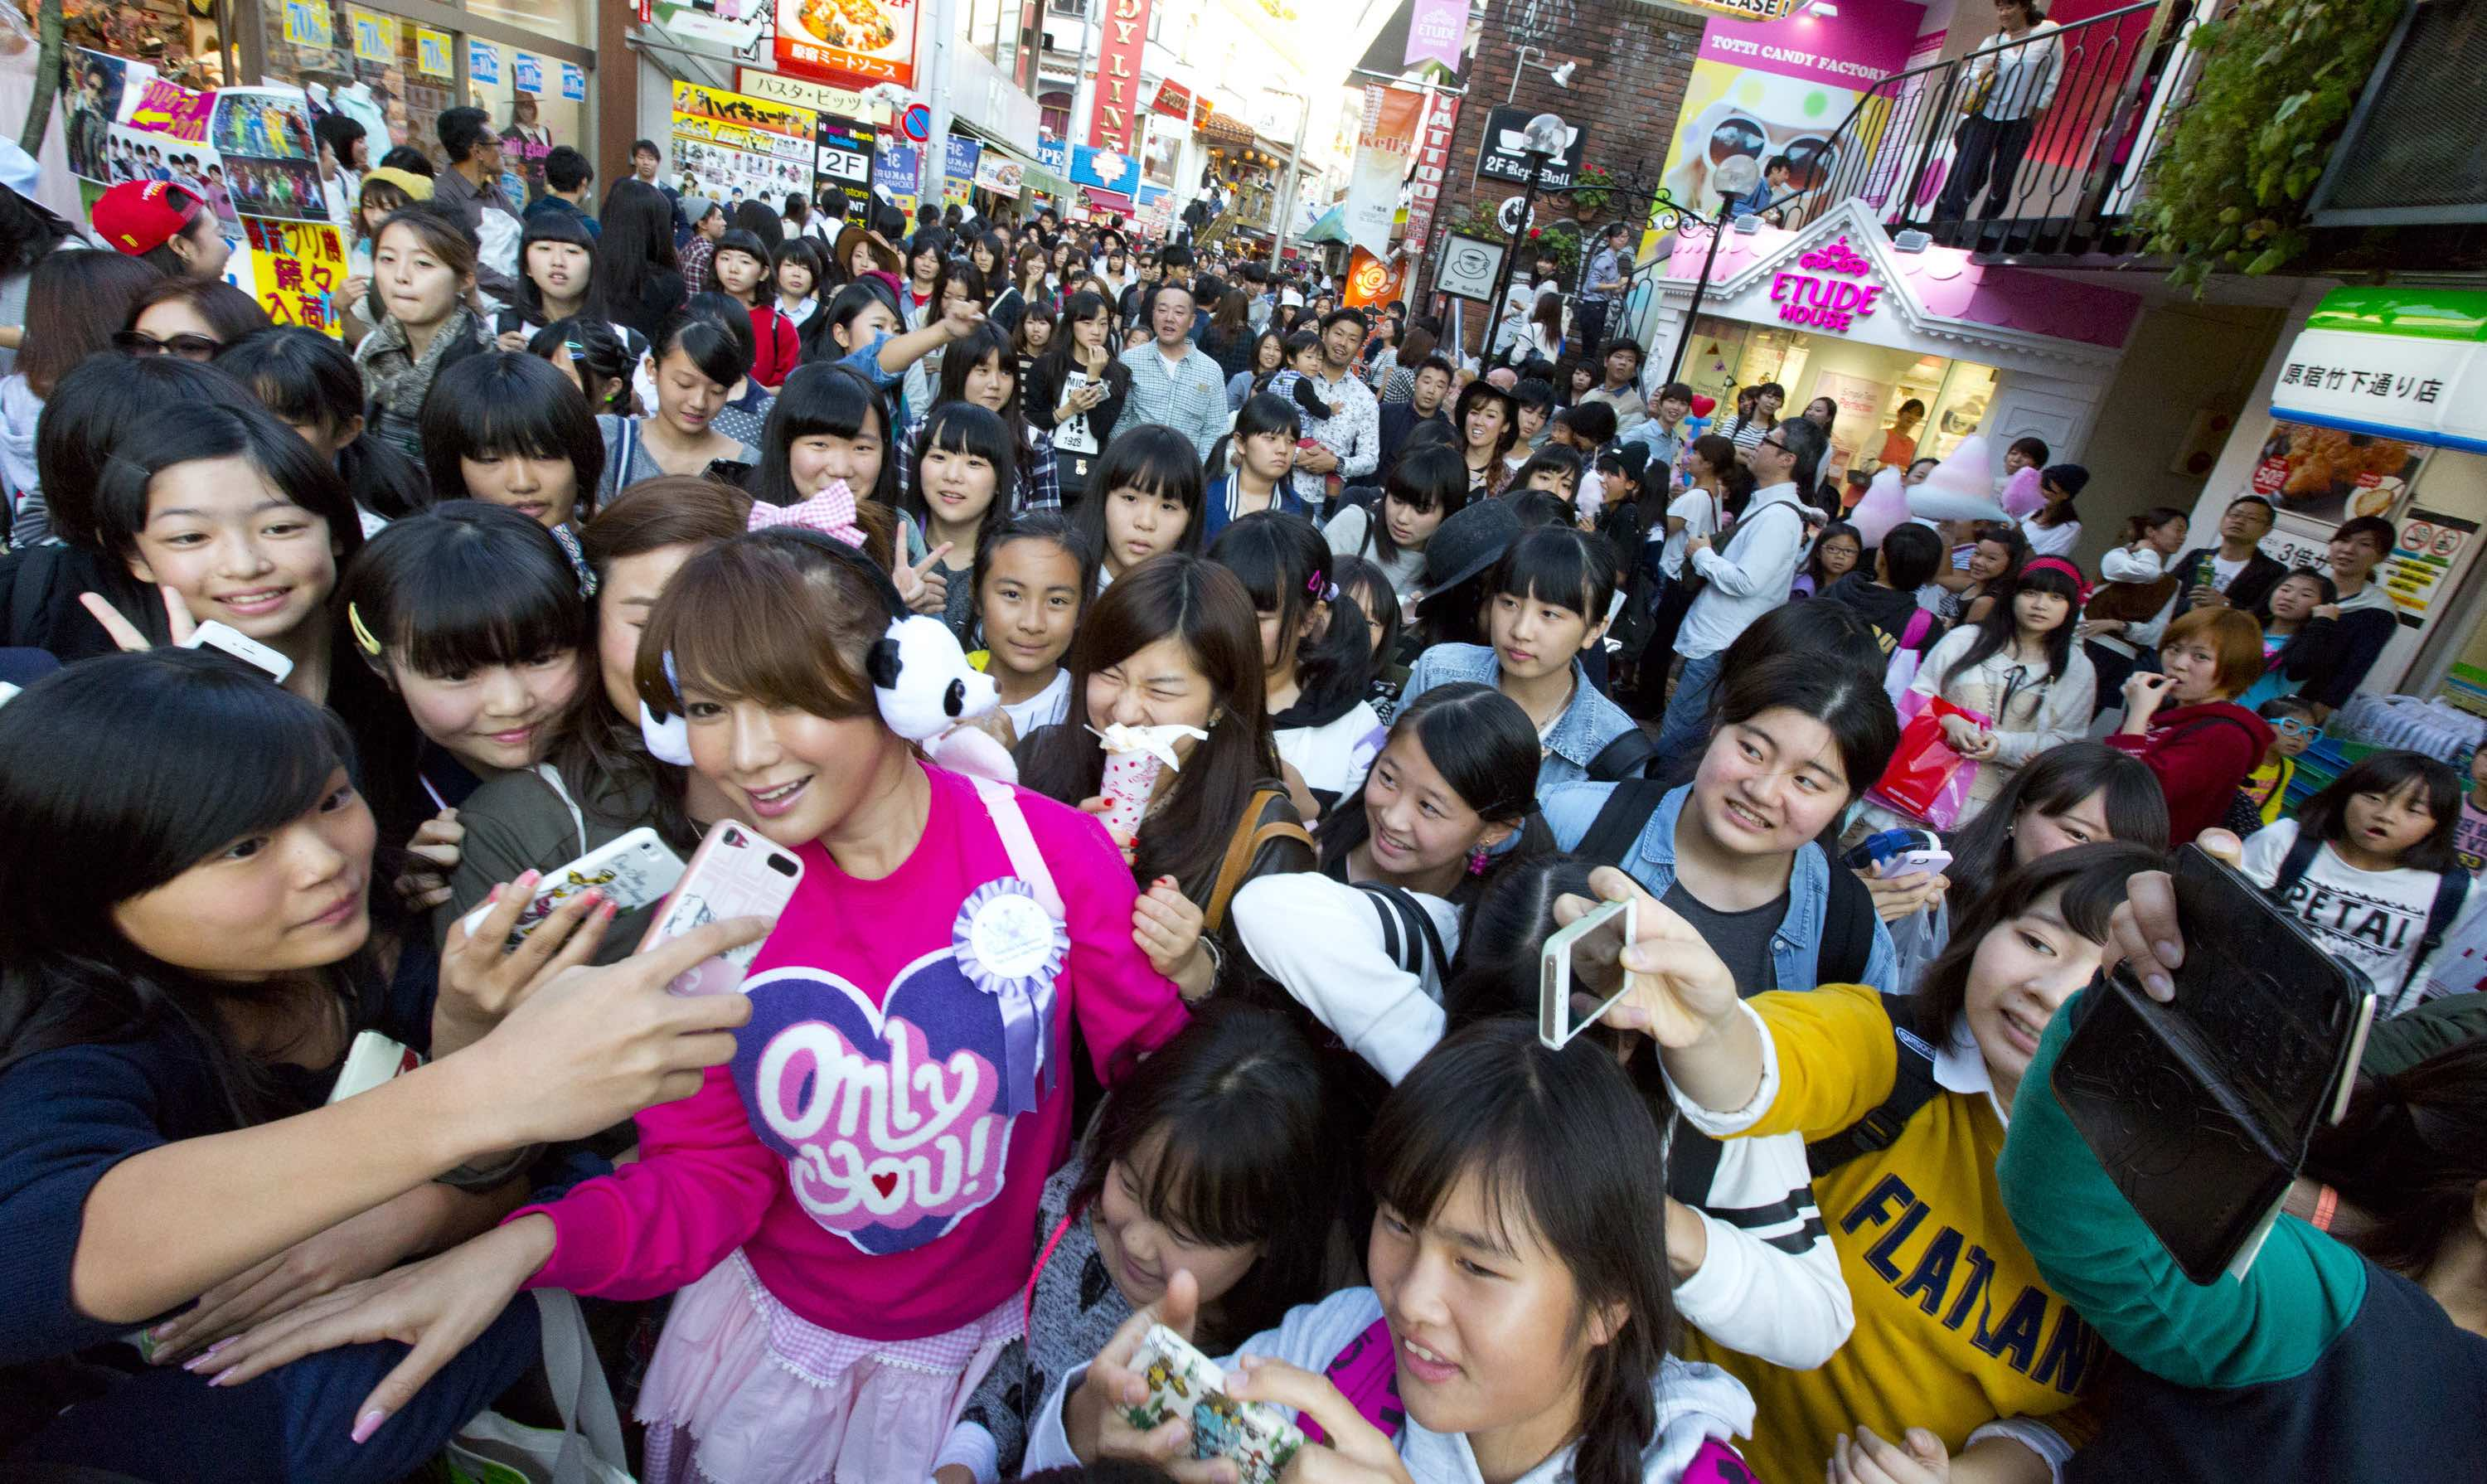 Ai Haruna surrounded by fans in Harajuku, a street popular with teenagers in Tokyo.